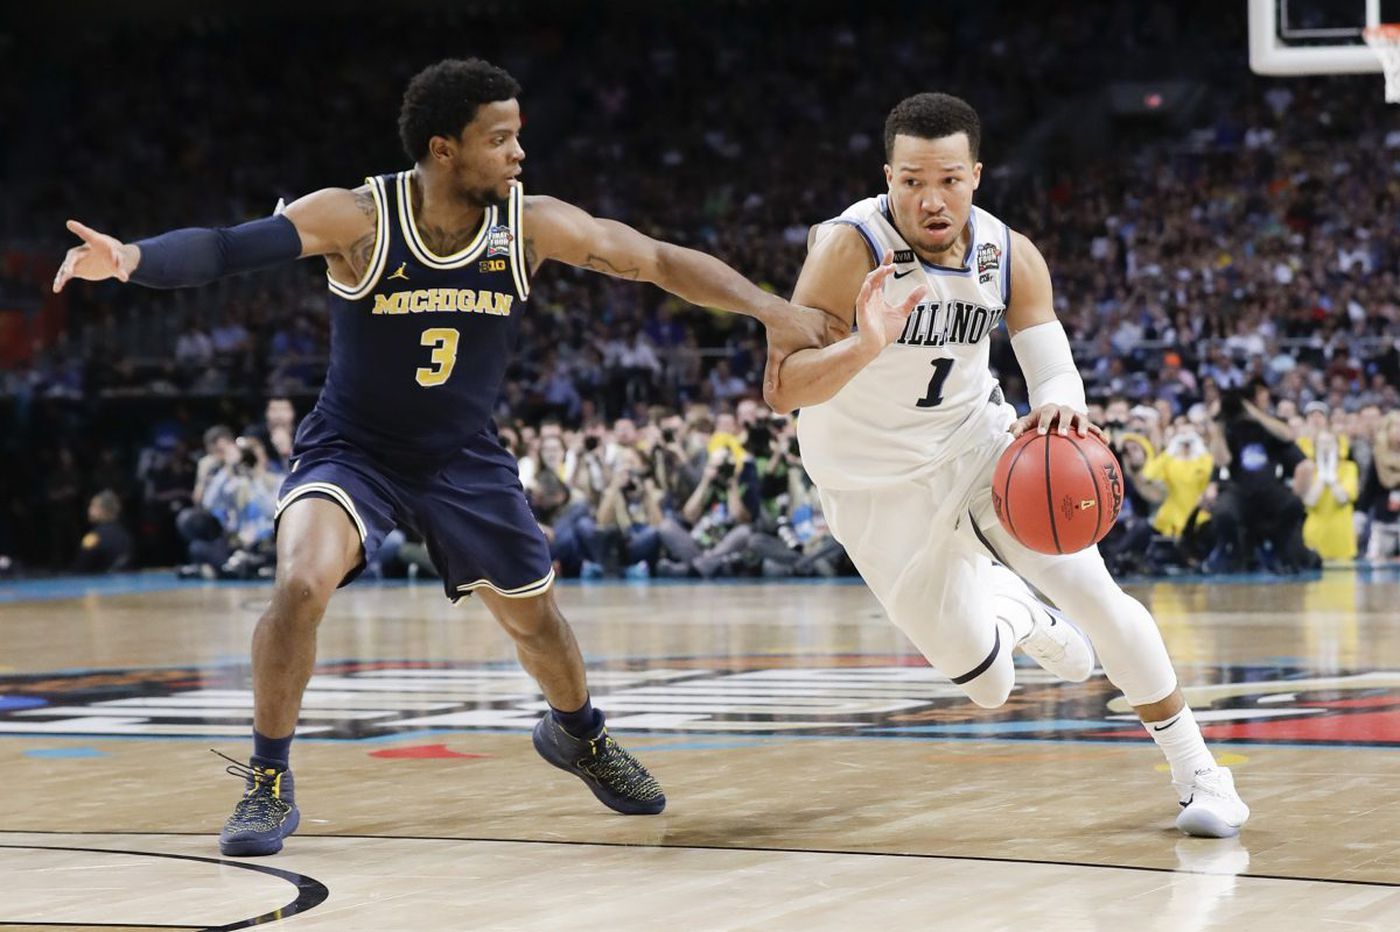 Villanova's national champions recognized with more national awards